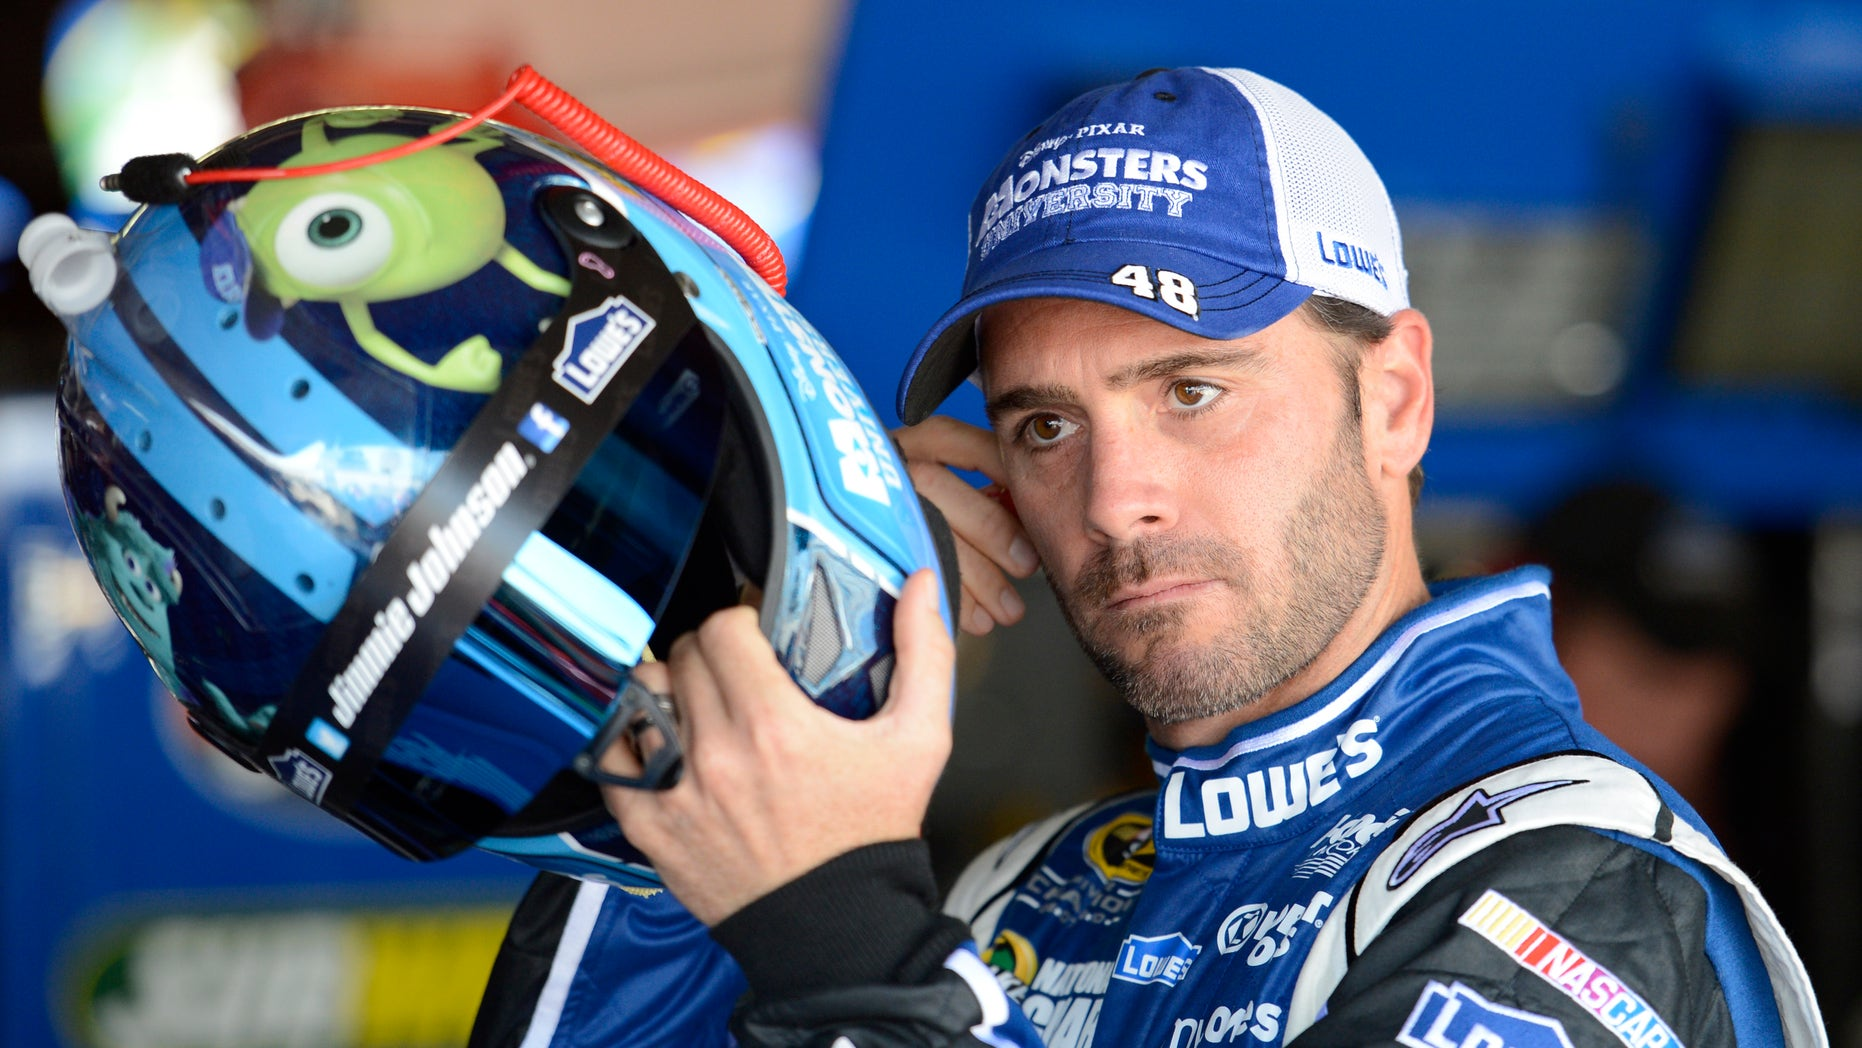 Driver Jimmie Johnson gets ready for practice for the NASCAR Sprint Cup series auto race, Friday, May 31, 2013, at Dover International Speedway in Dover, Del. (AP Photo/Nick Wass)